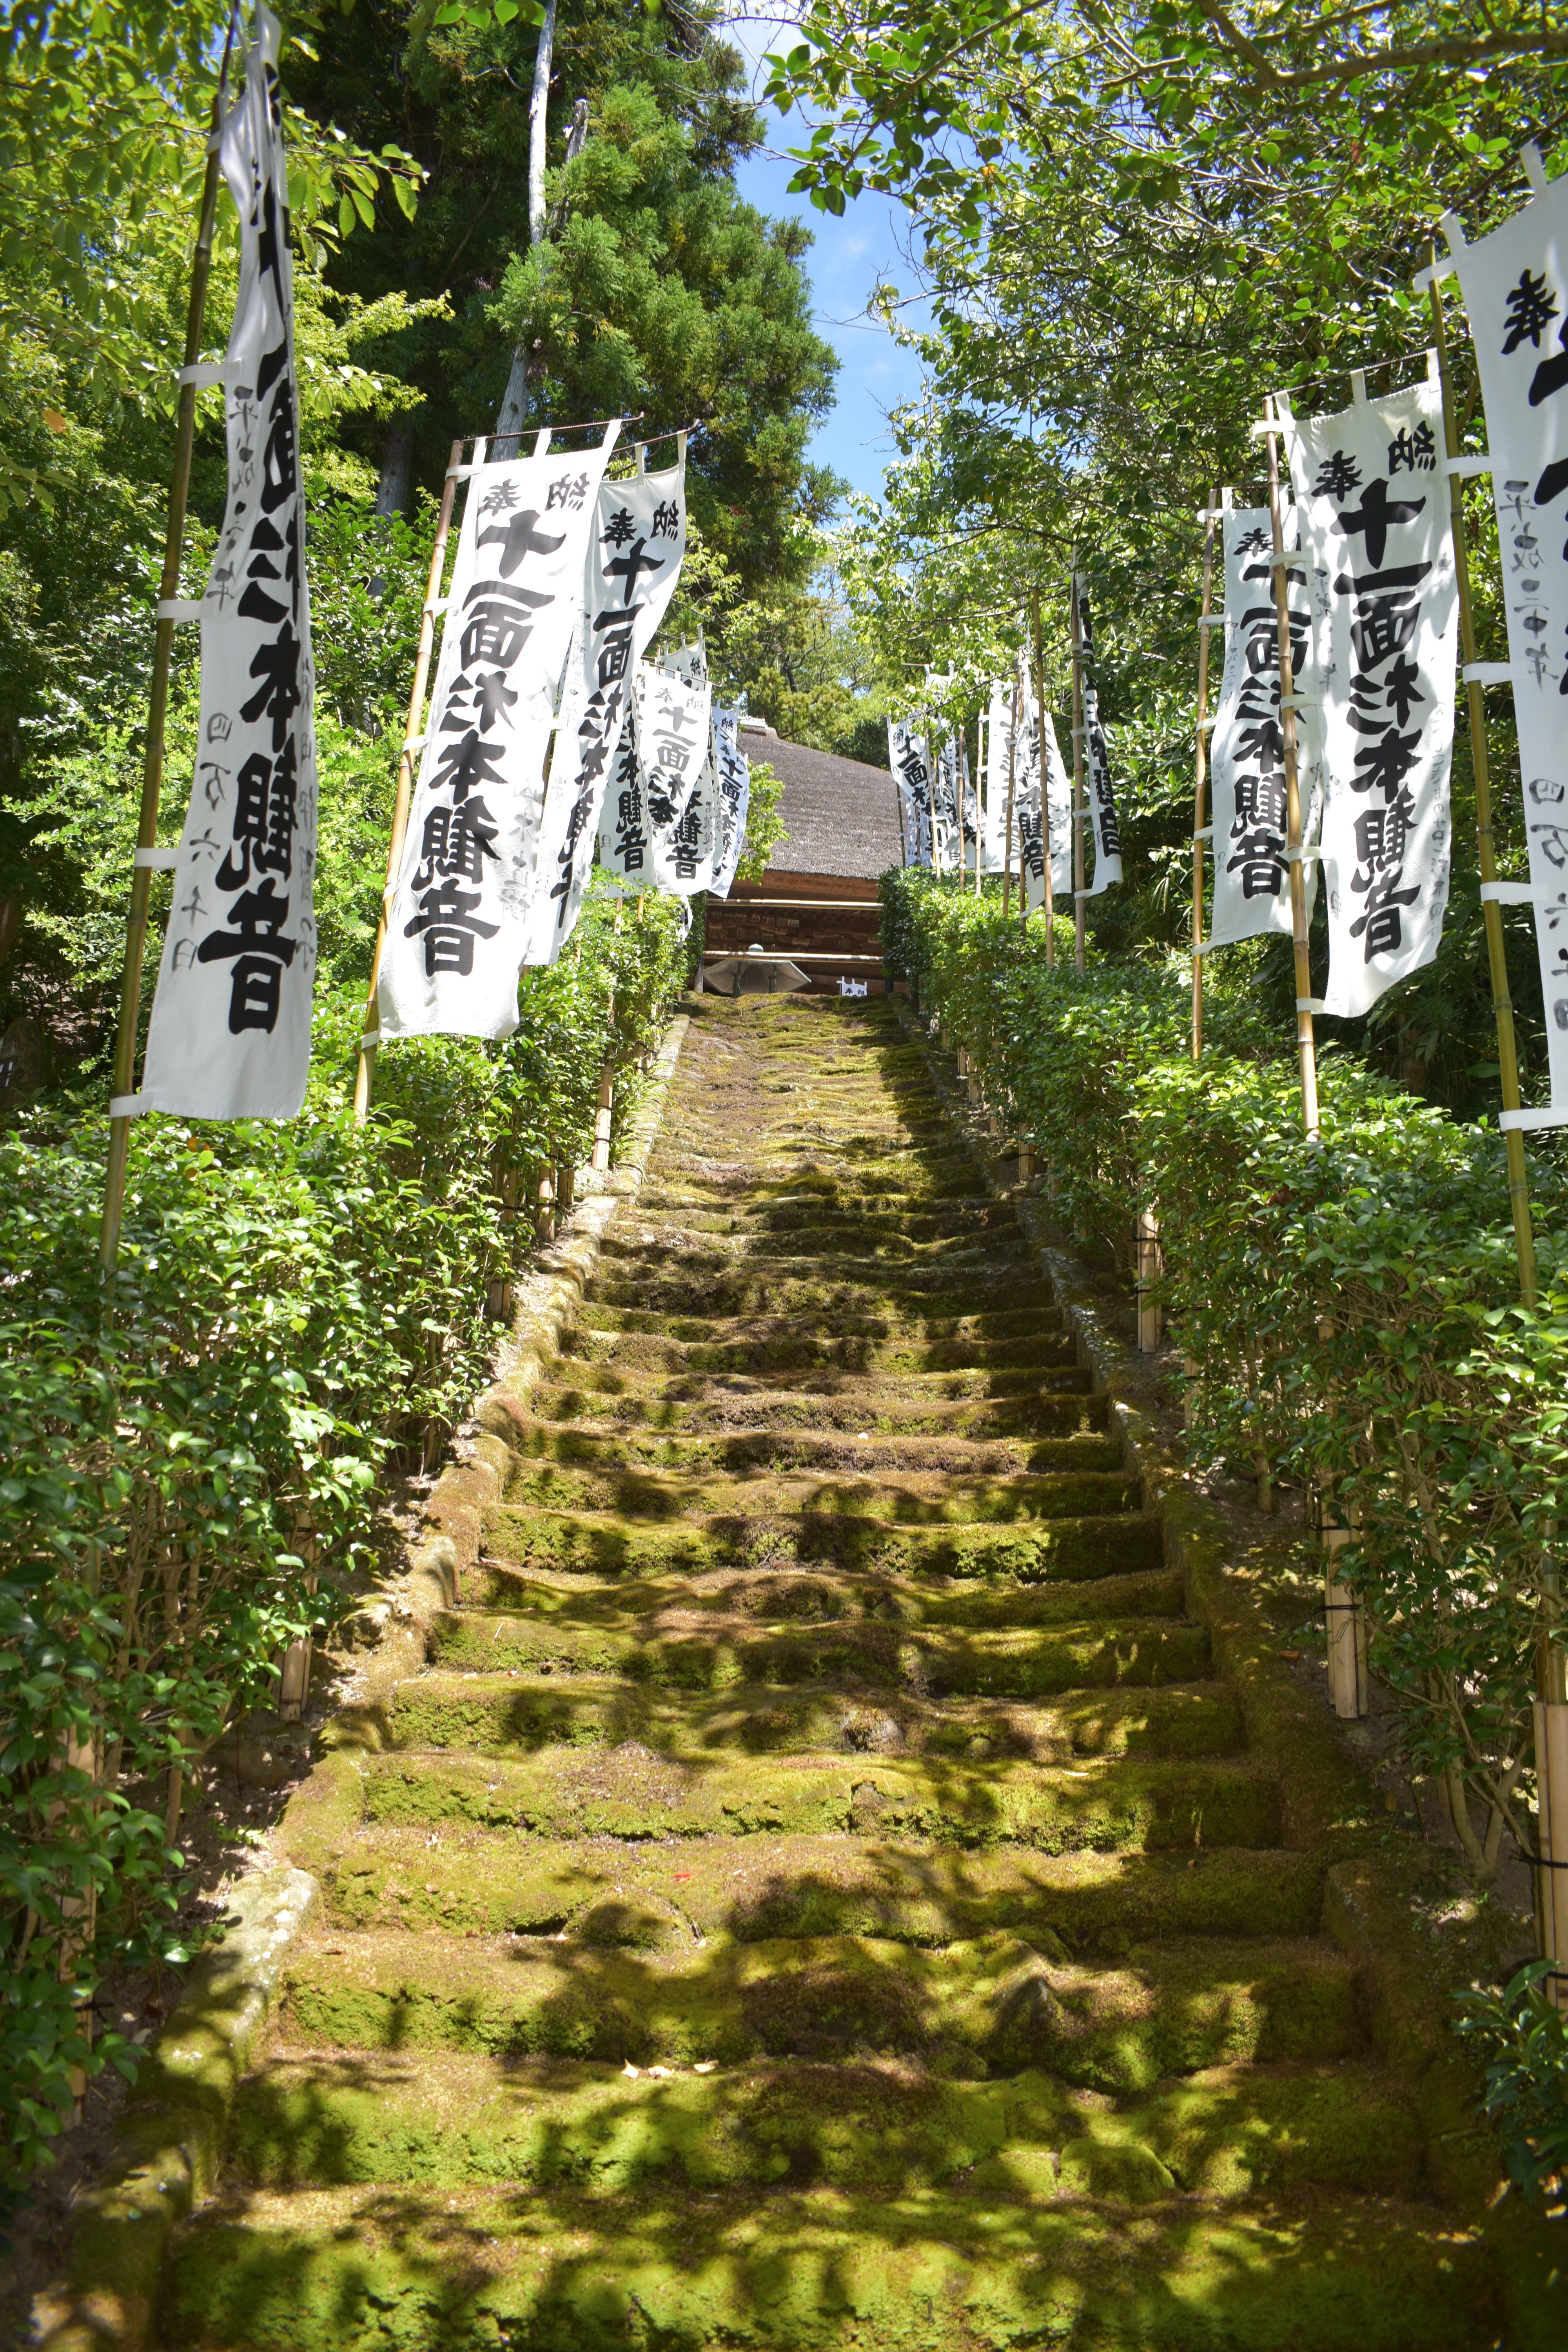 A picture of the steps to the Sugimotodera temple